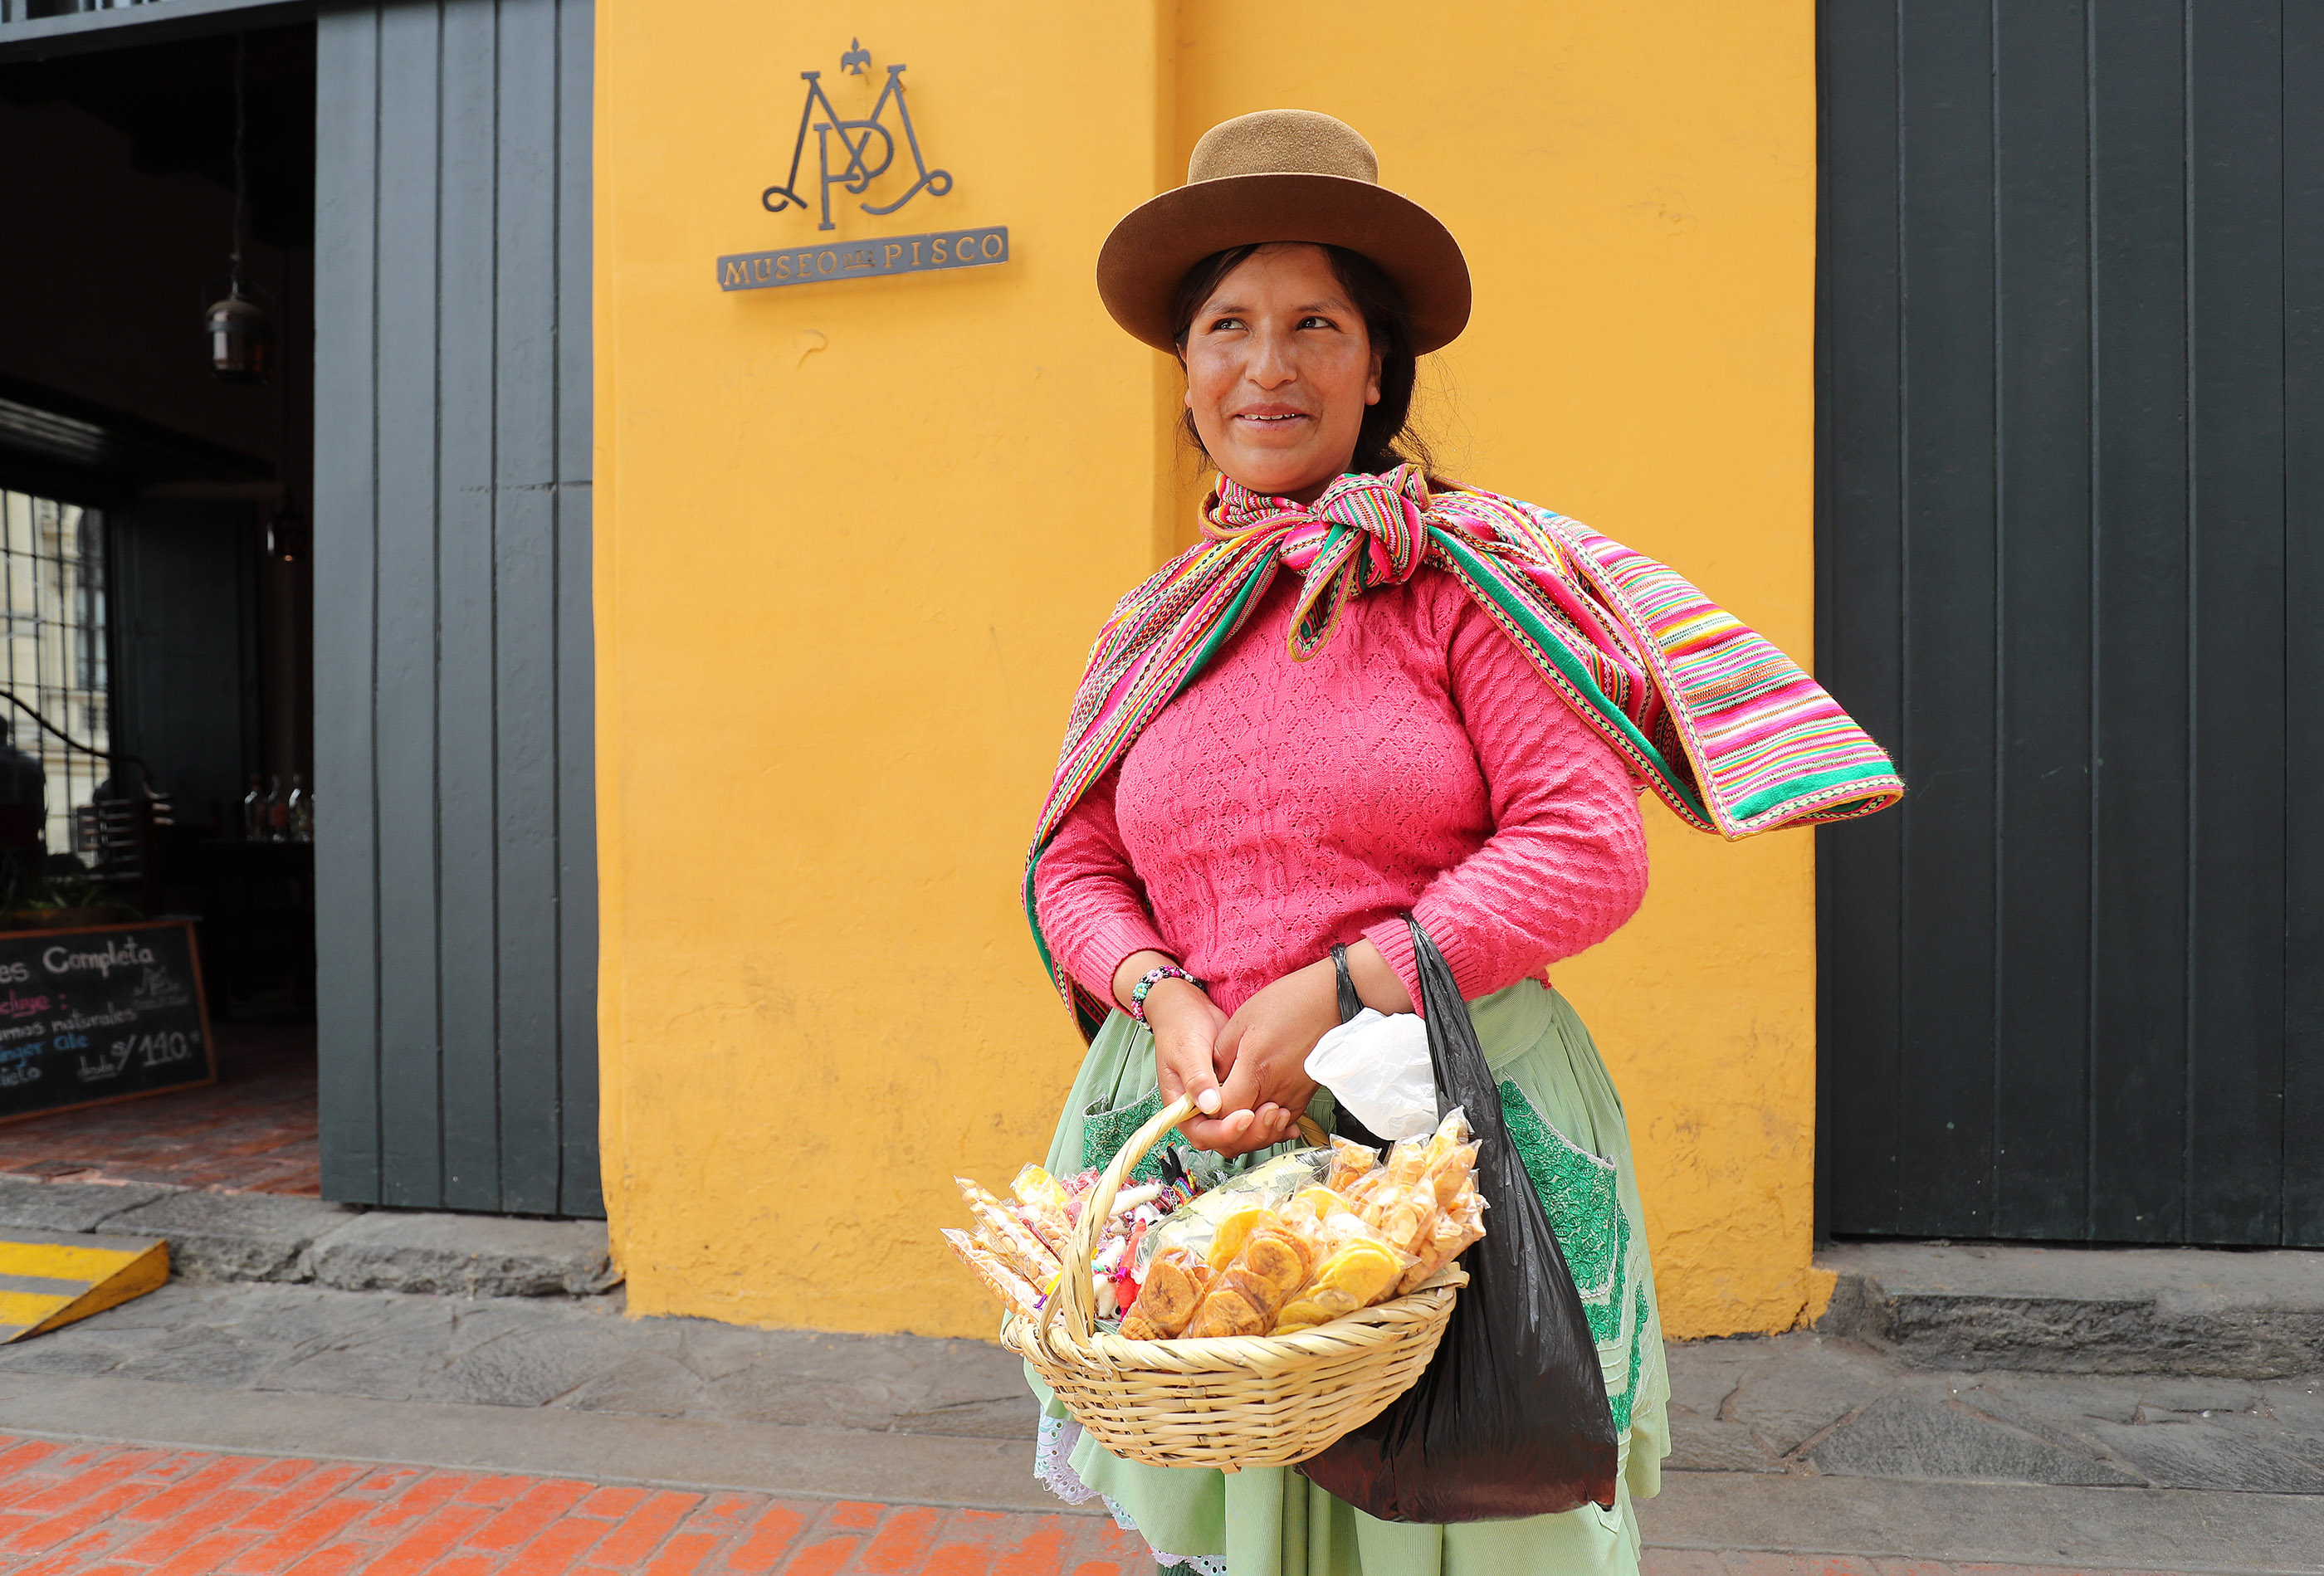 A Peruvian woman sells food and trinkets on the street in Lima, Peru, on Oct. 21, 2018.